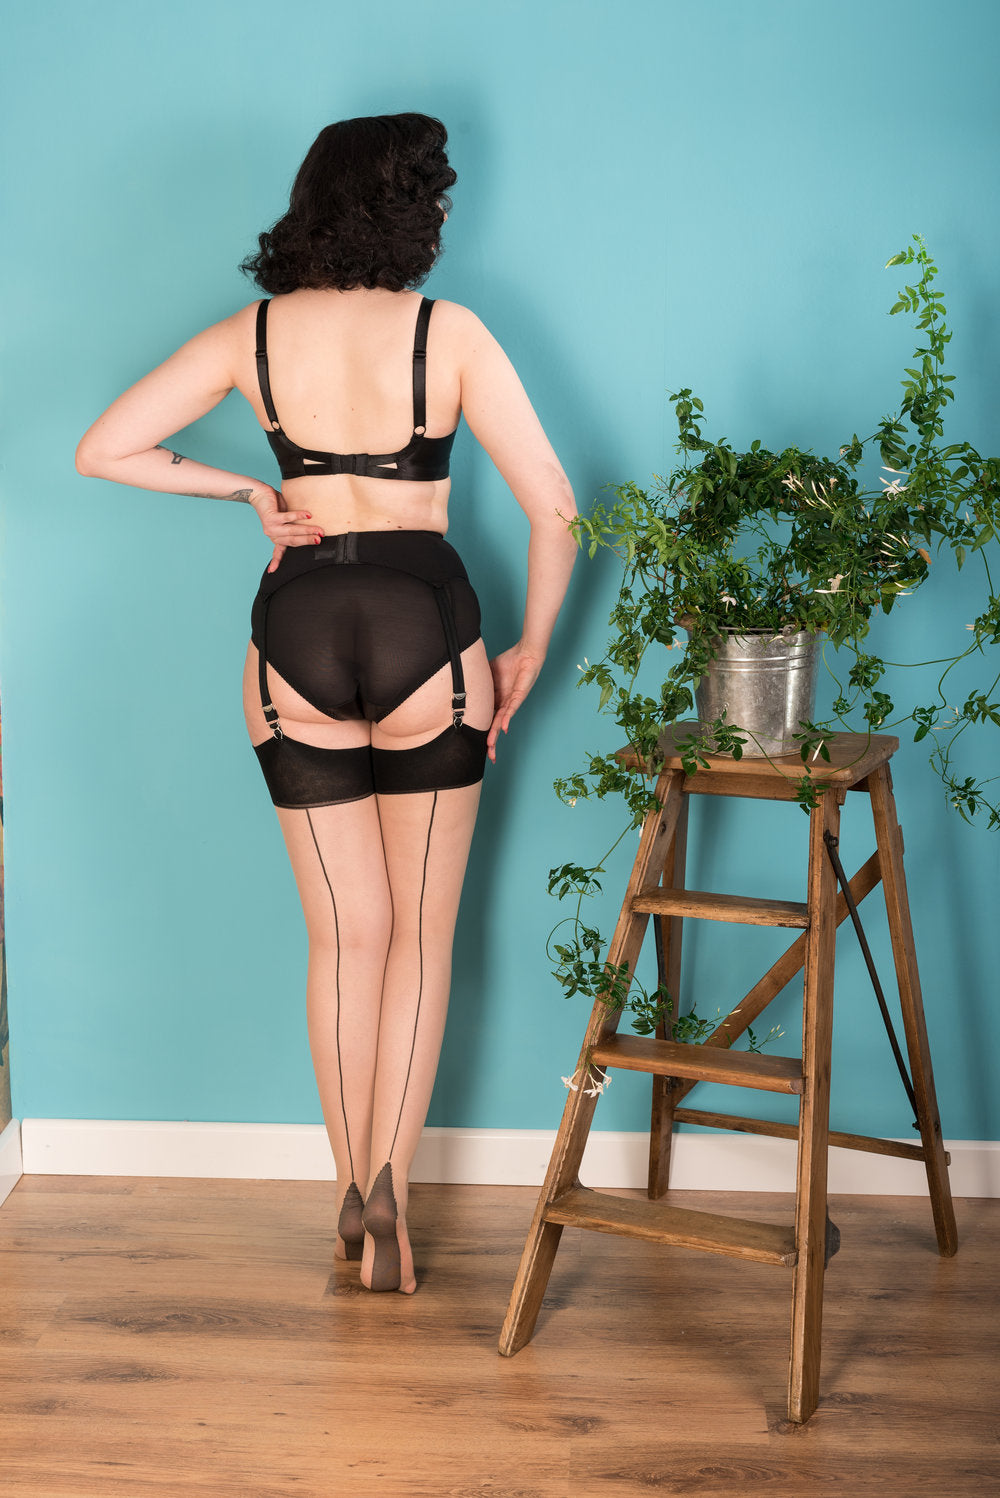 Glamour Seamed Stocking in Black - Vivacious Vixen Apparel